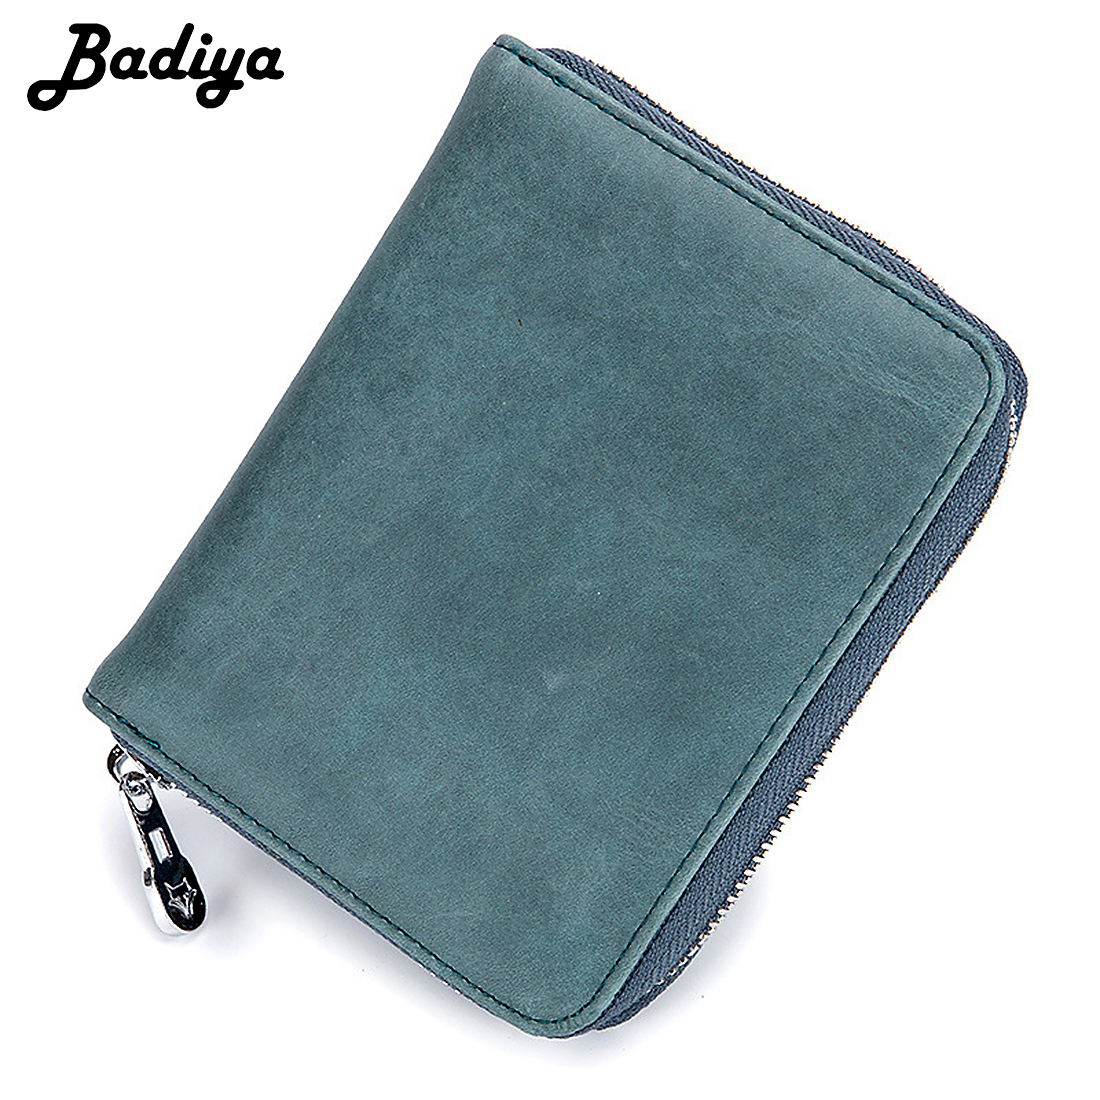 Unisex Genuine Leather Zipper Accordion Wallet Multifunctional Travel Passport Card Holder Bag Small Coin Purse